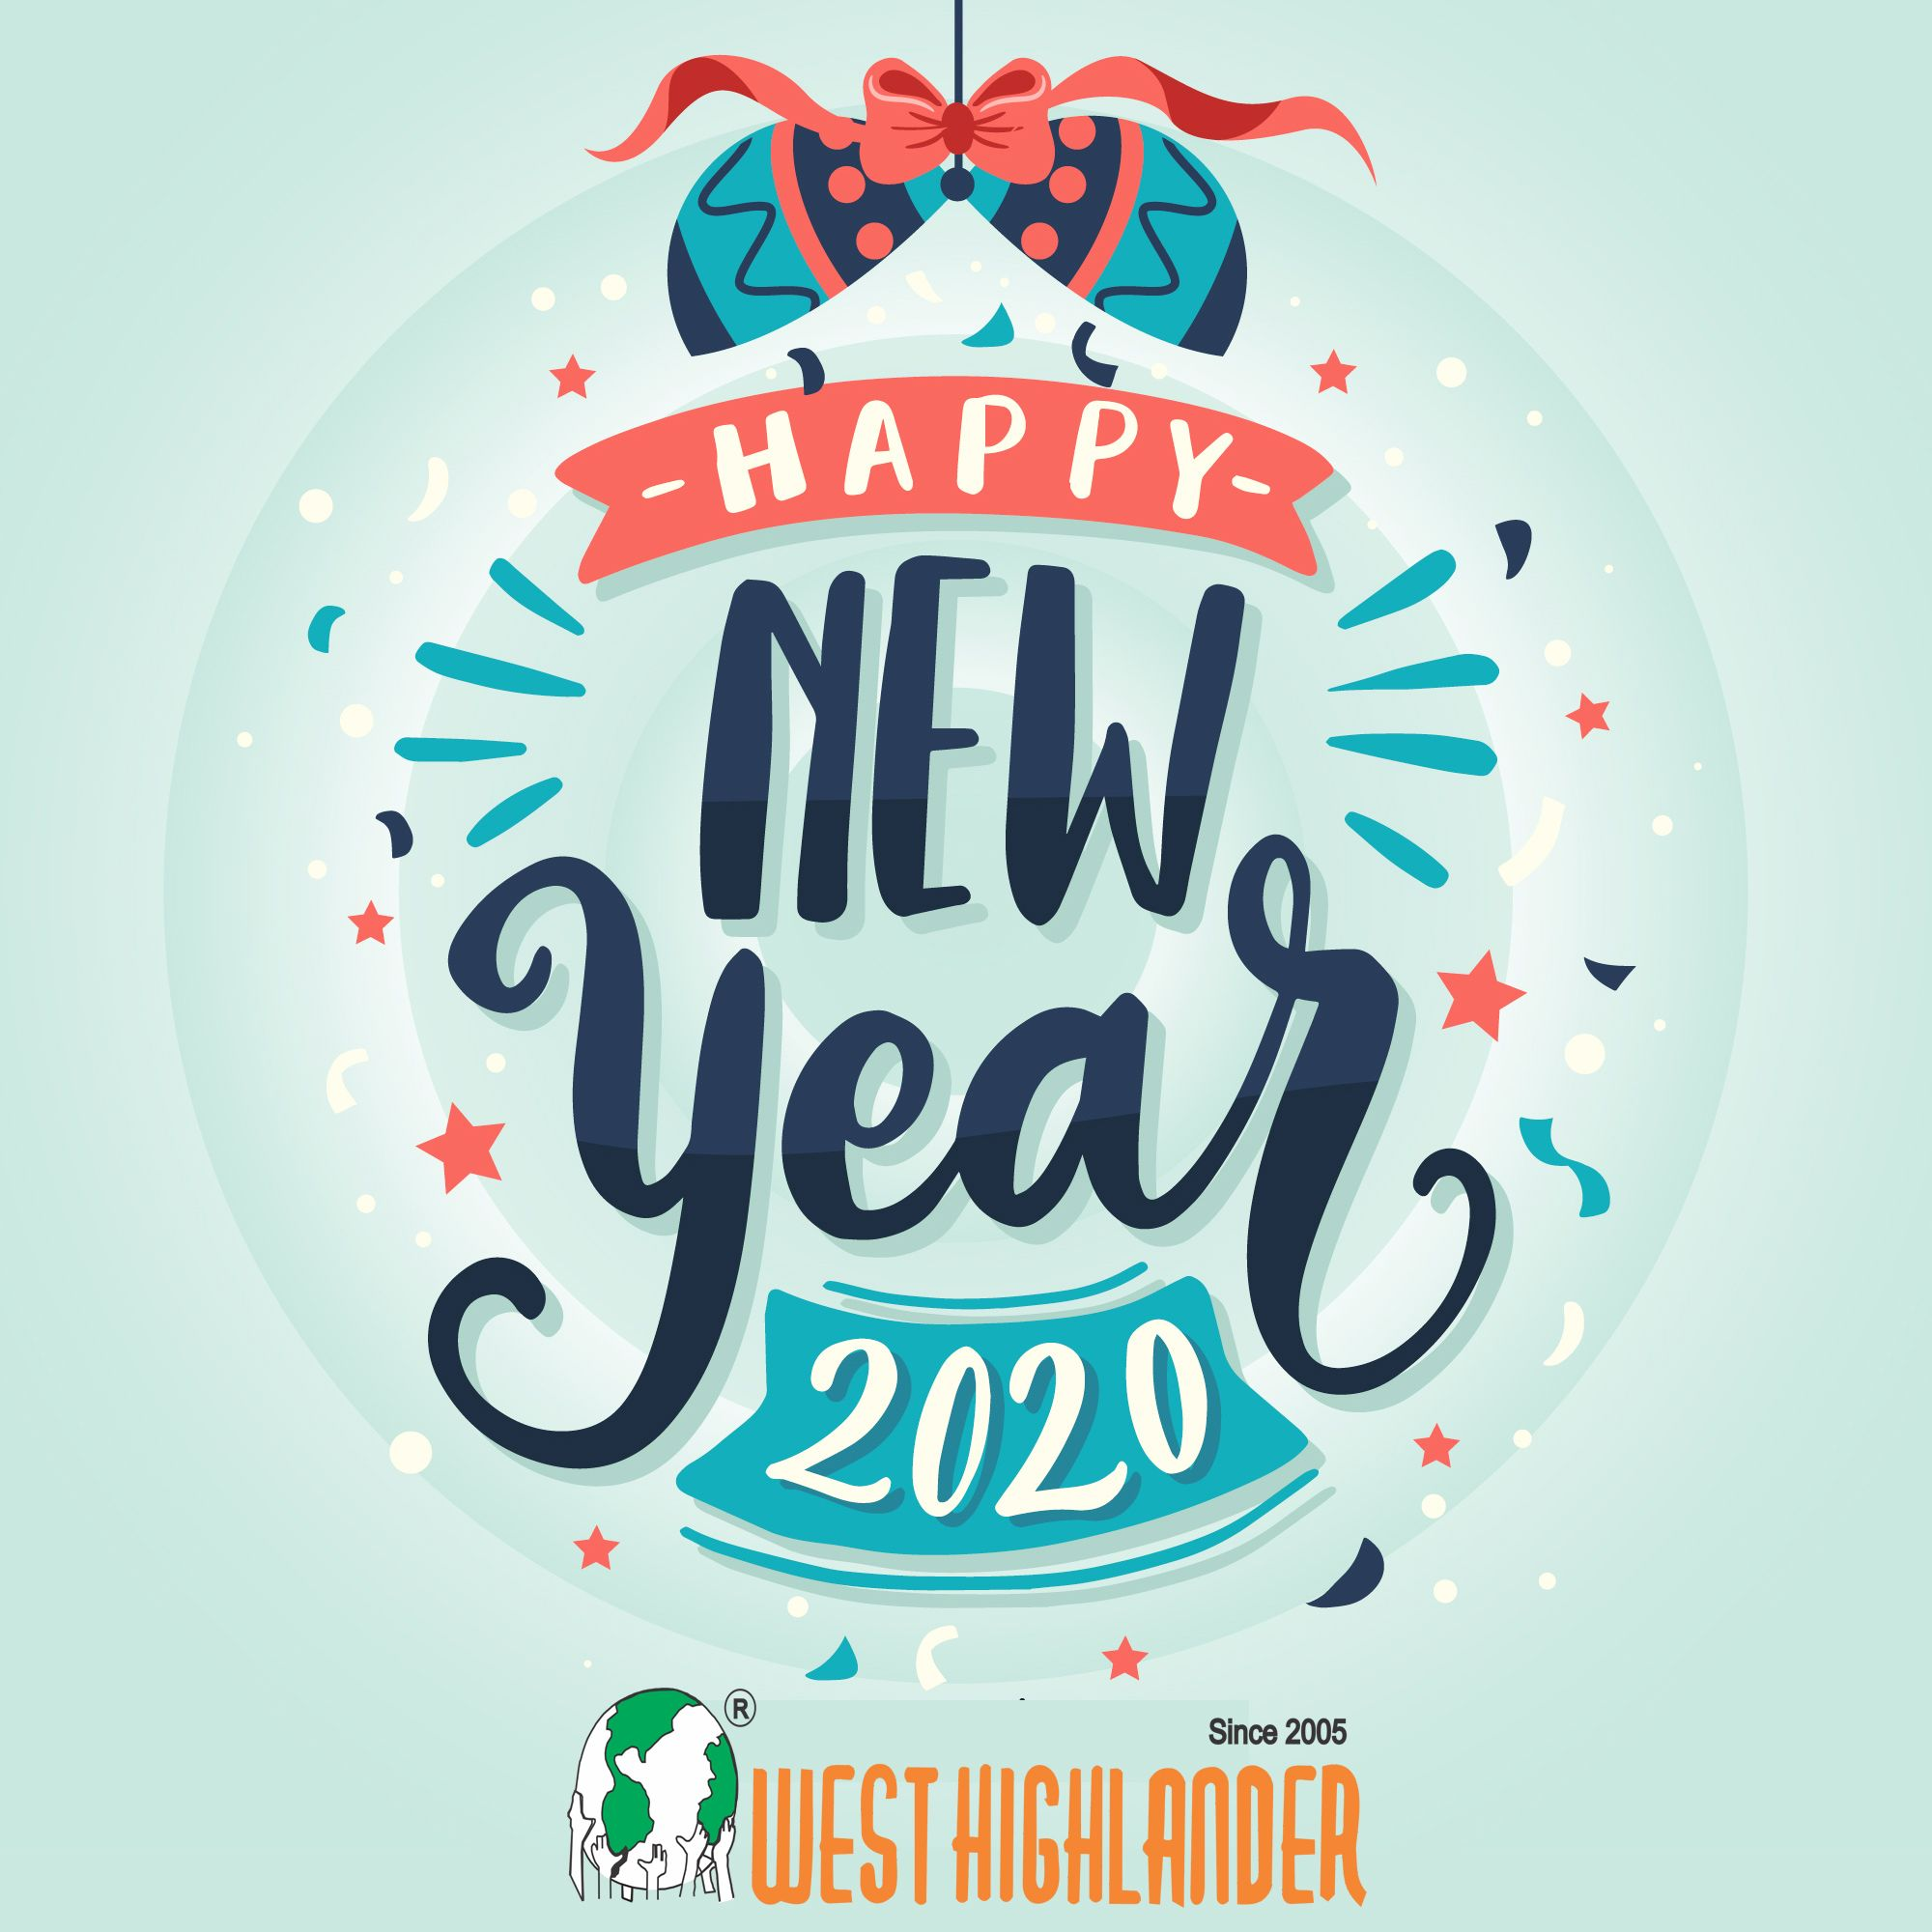 A Year Of Happiness team west highlander wishes everyone a very prosperous new